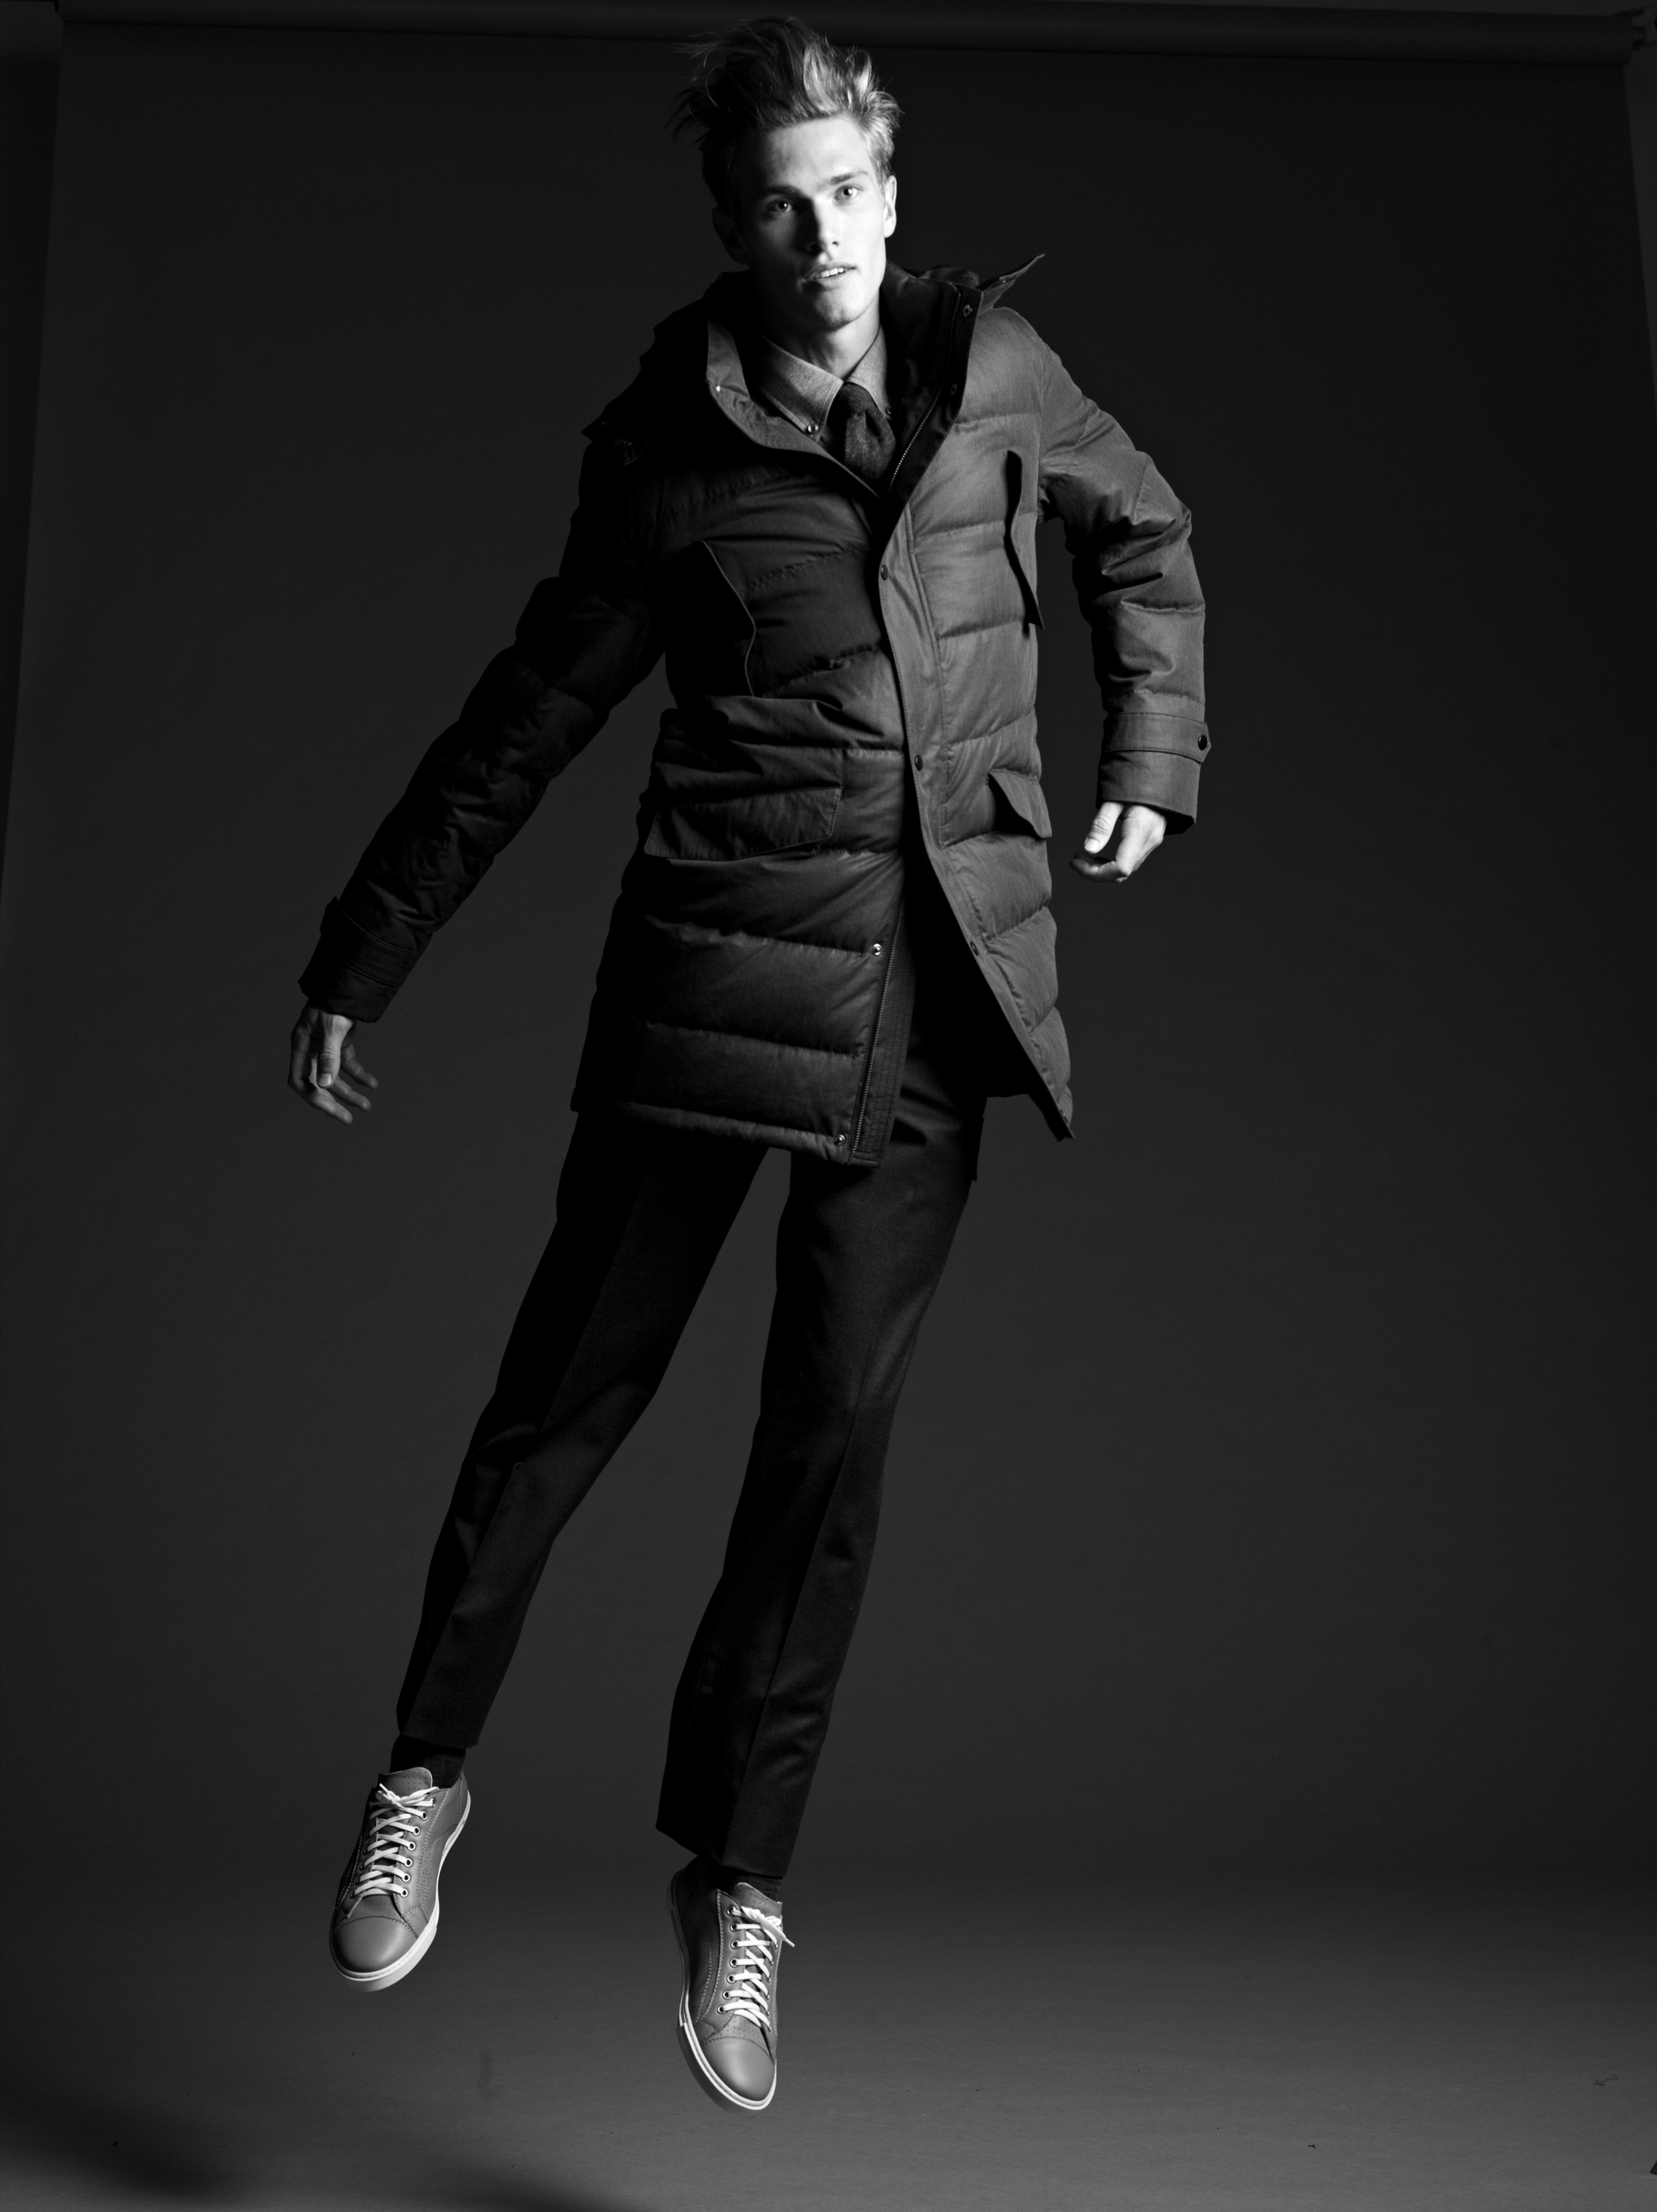 marcus hedbradh for rogatis fw11-12